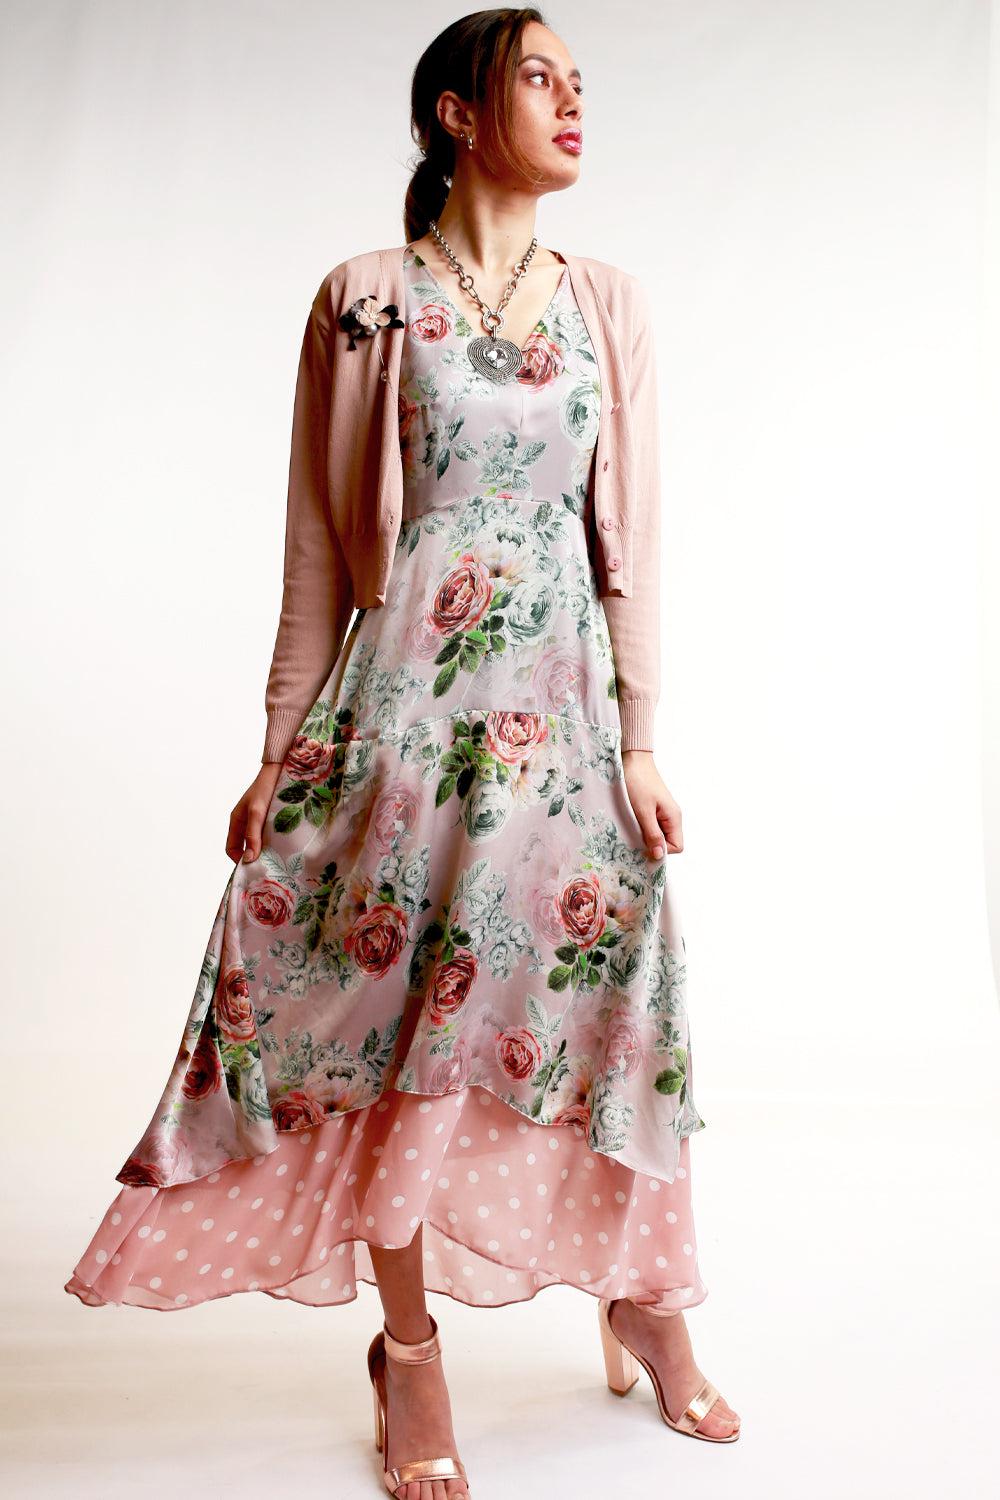 Annah Stretton Pink floral Mother of the bride event dress with Cardi